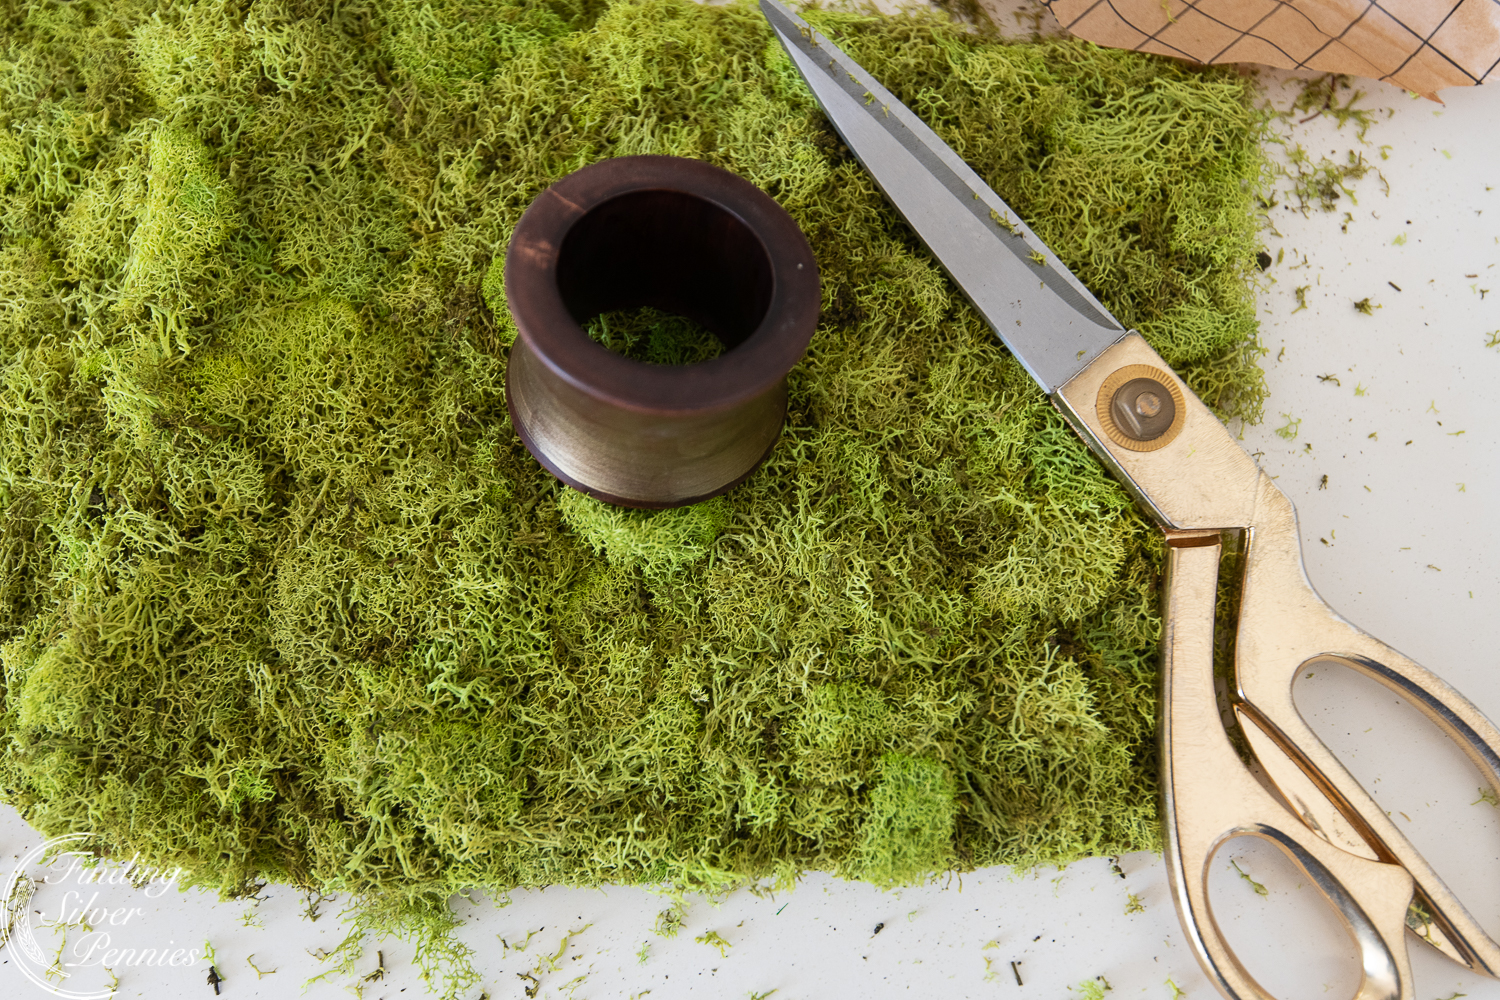 Simple steps for moss napkin rings #moss #crafts #DIYmosswreath #diymossnapkinrings #winterdecorating #hygge #cozyliving